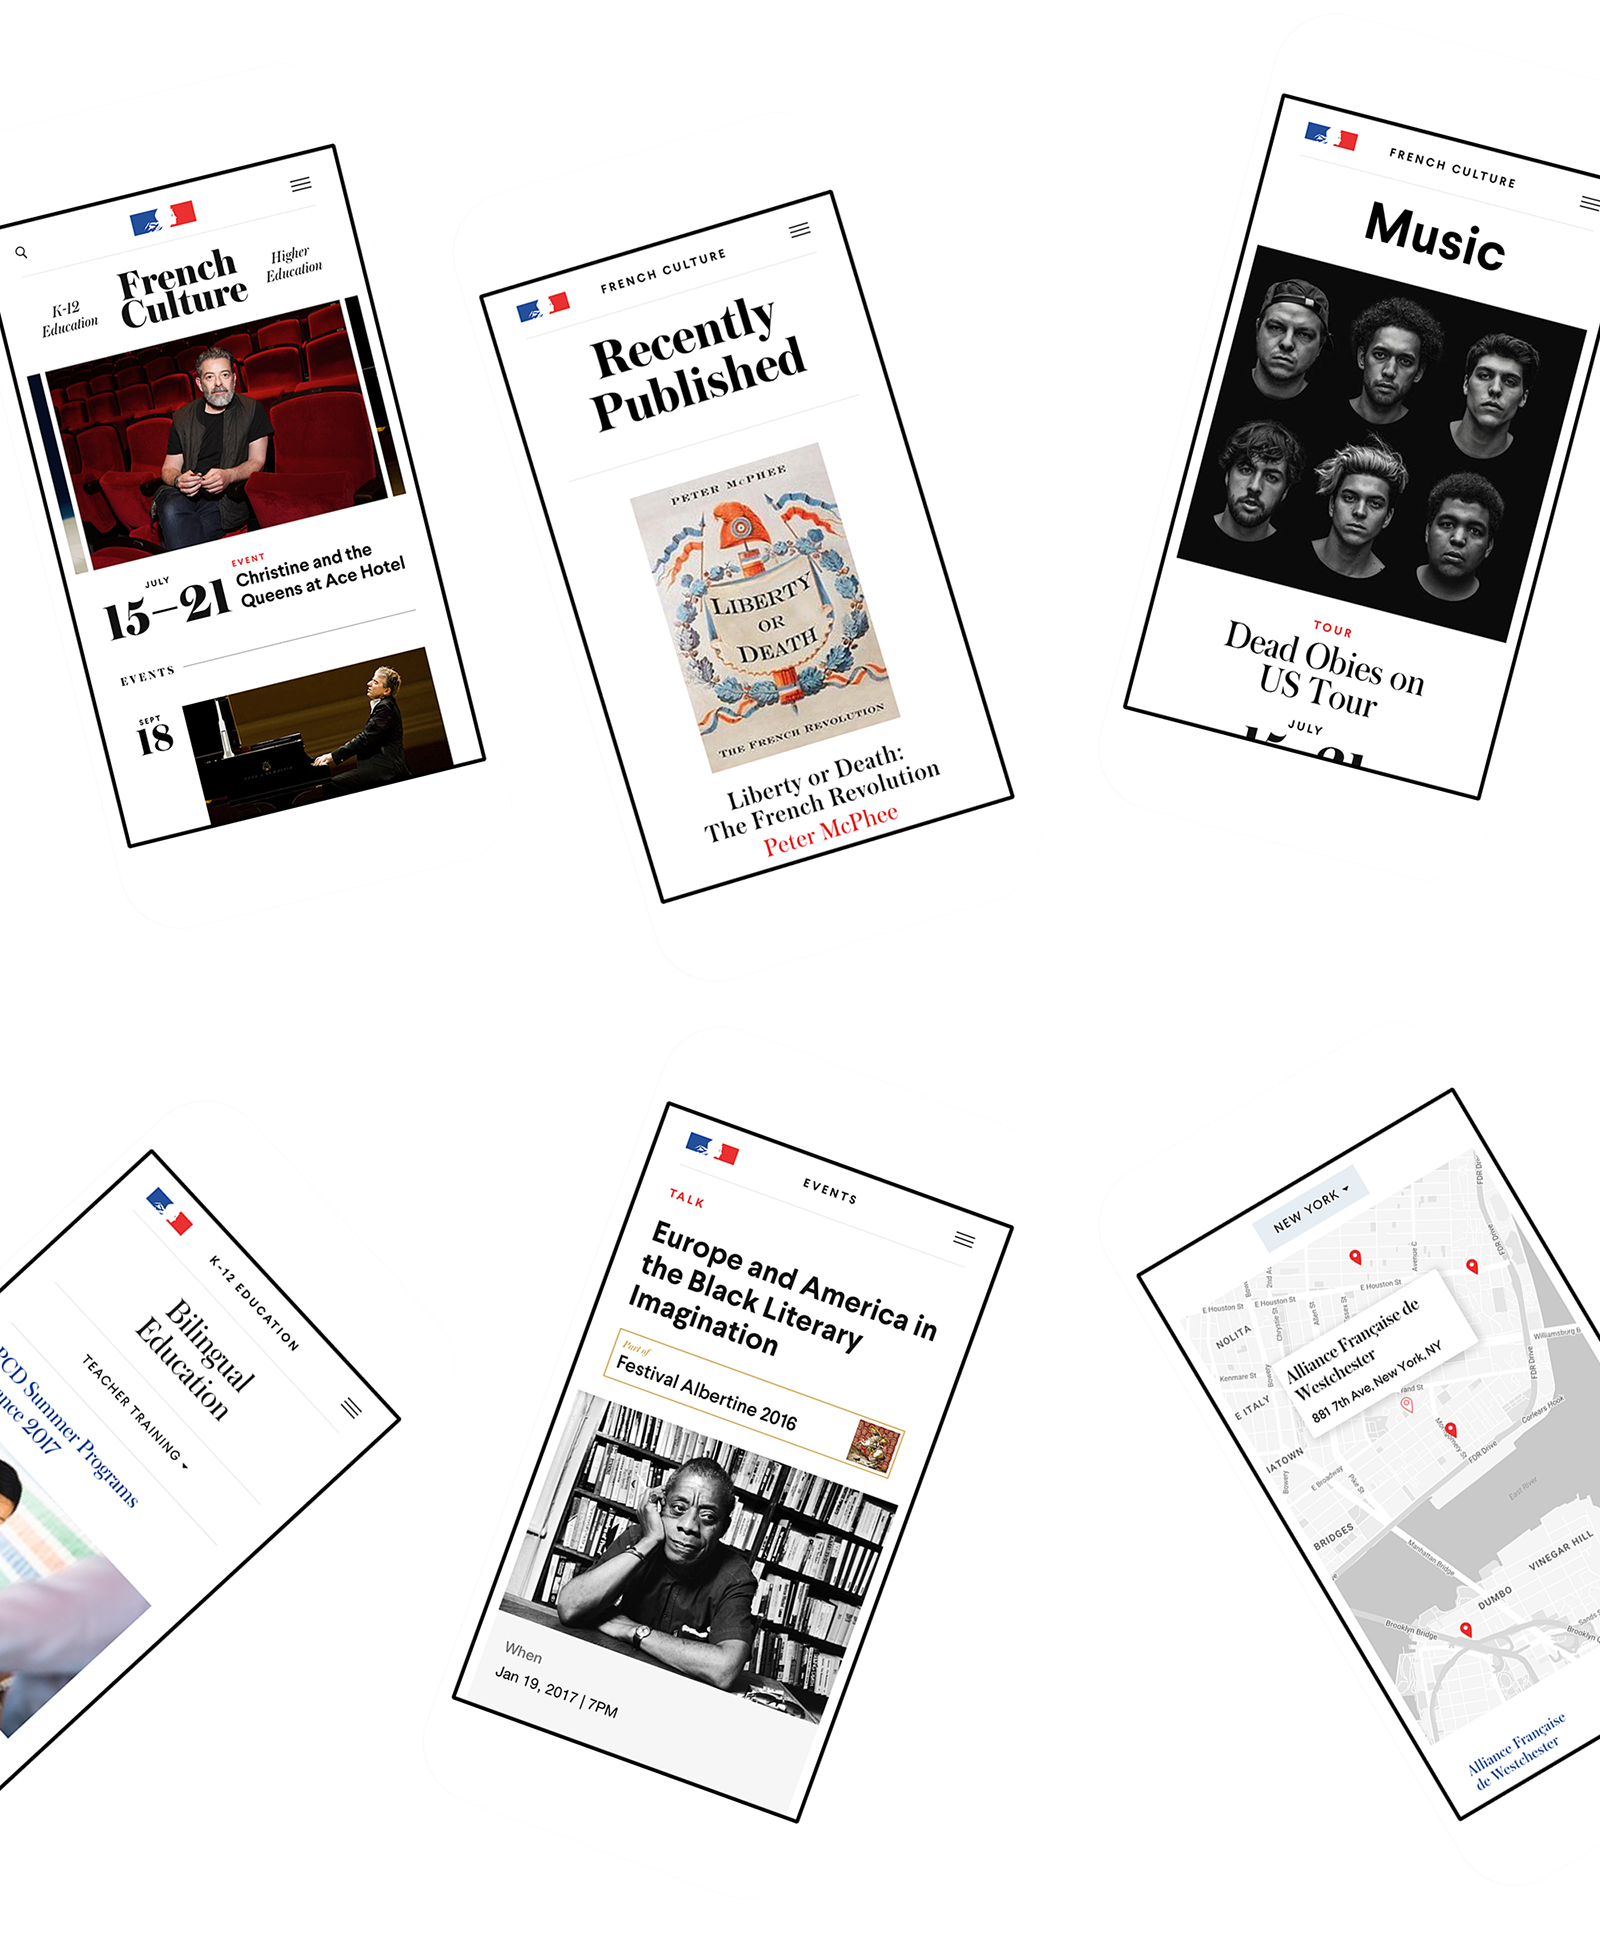 /uploads/files/2/Projects/French Culture in the US/phones-french.png